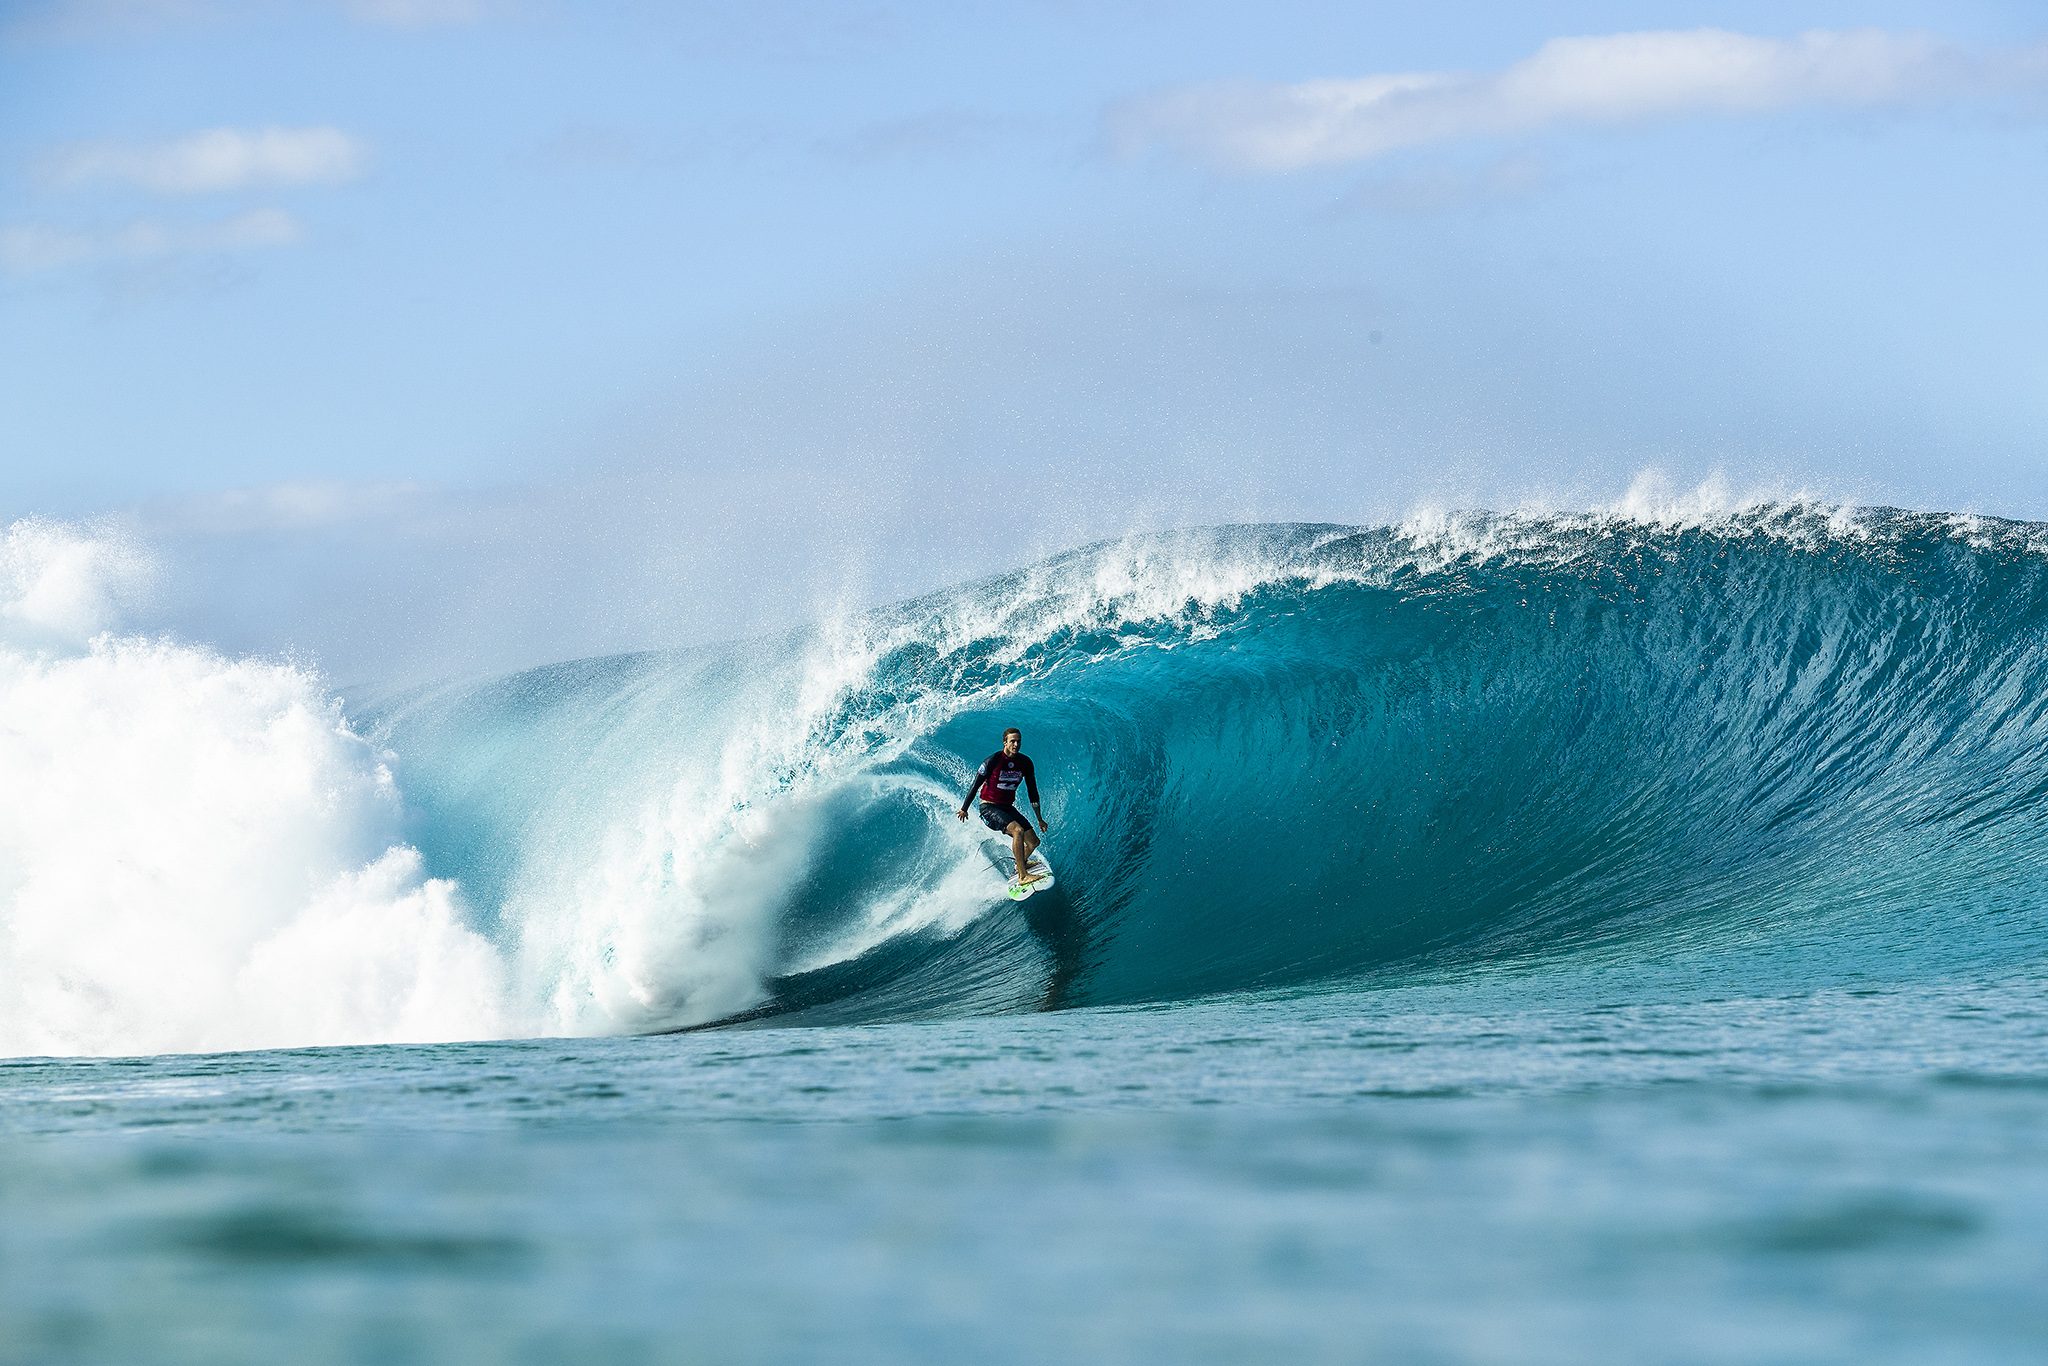 195c19819d86fb Ryan Callinan (AUS) advances to Round 3 of the 2018 Billabong Pipe Masters  after winning a close Heat 7 of Round 2 at Pipeline